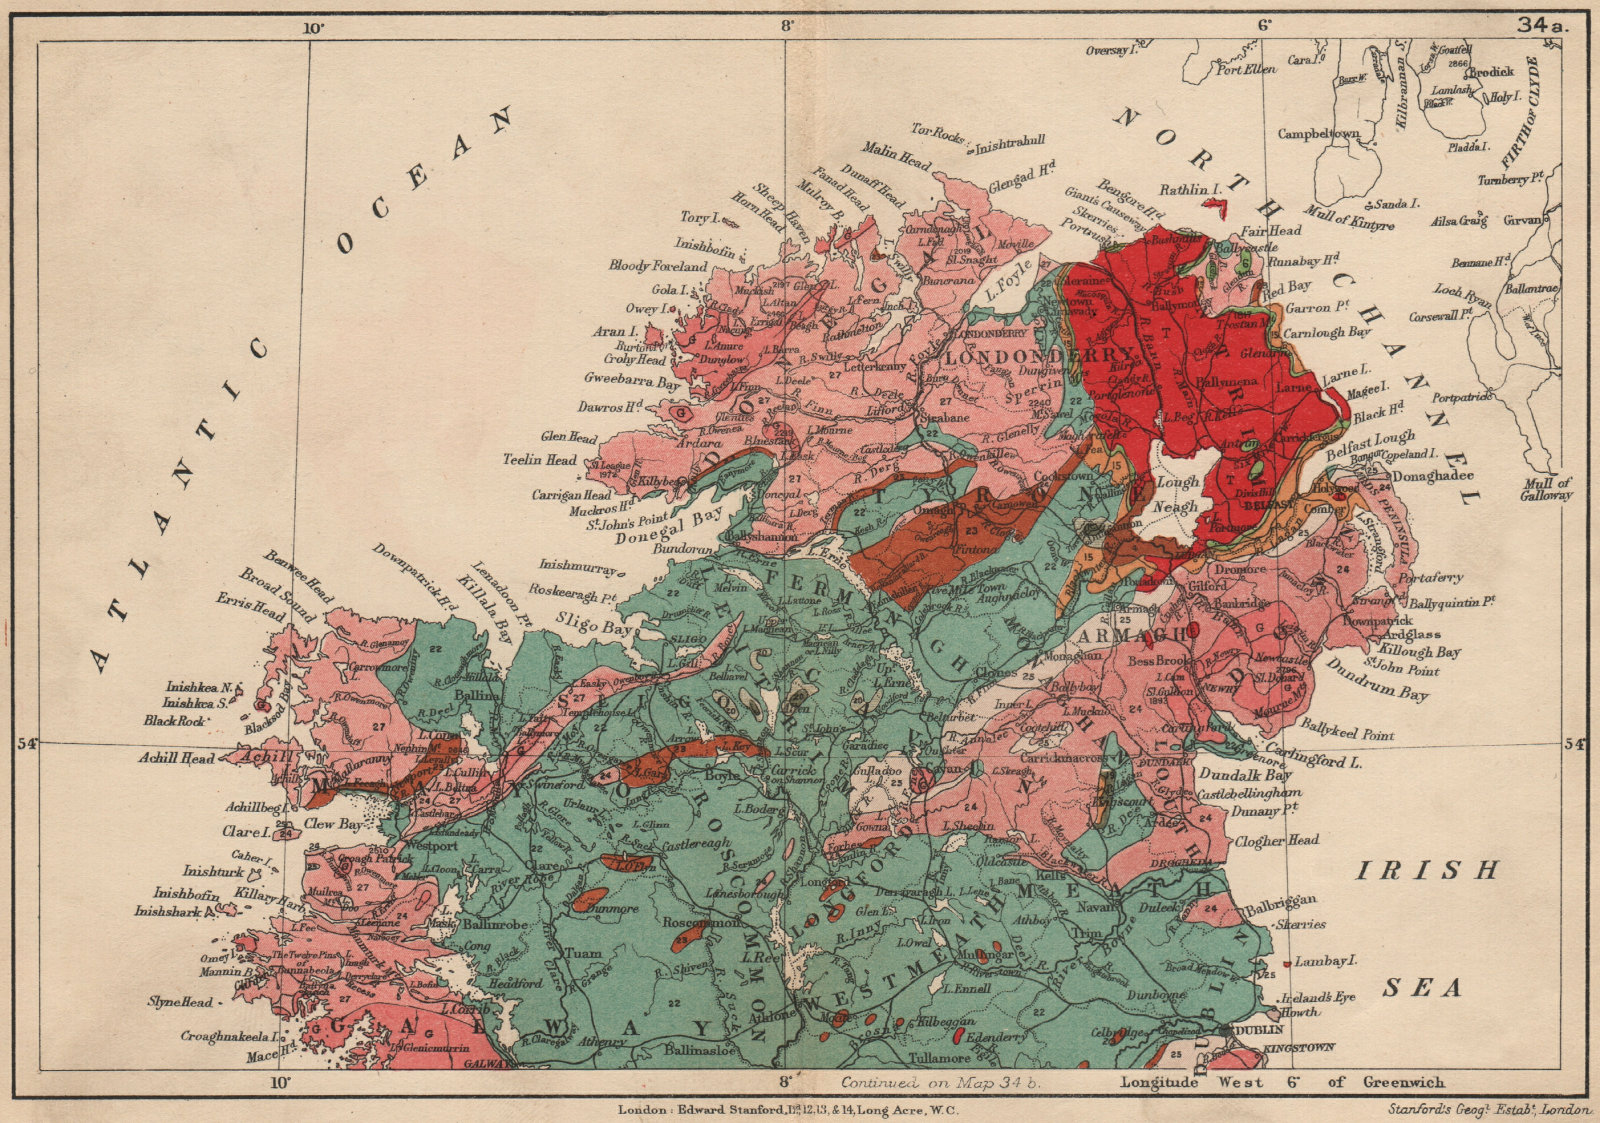 Associate Product NORTHERN IRELAND Geological map. STANFORD 1913 old antique plan chart